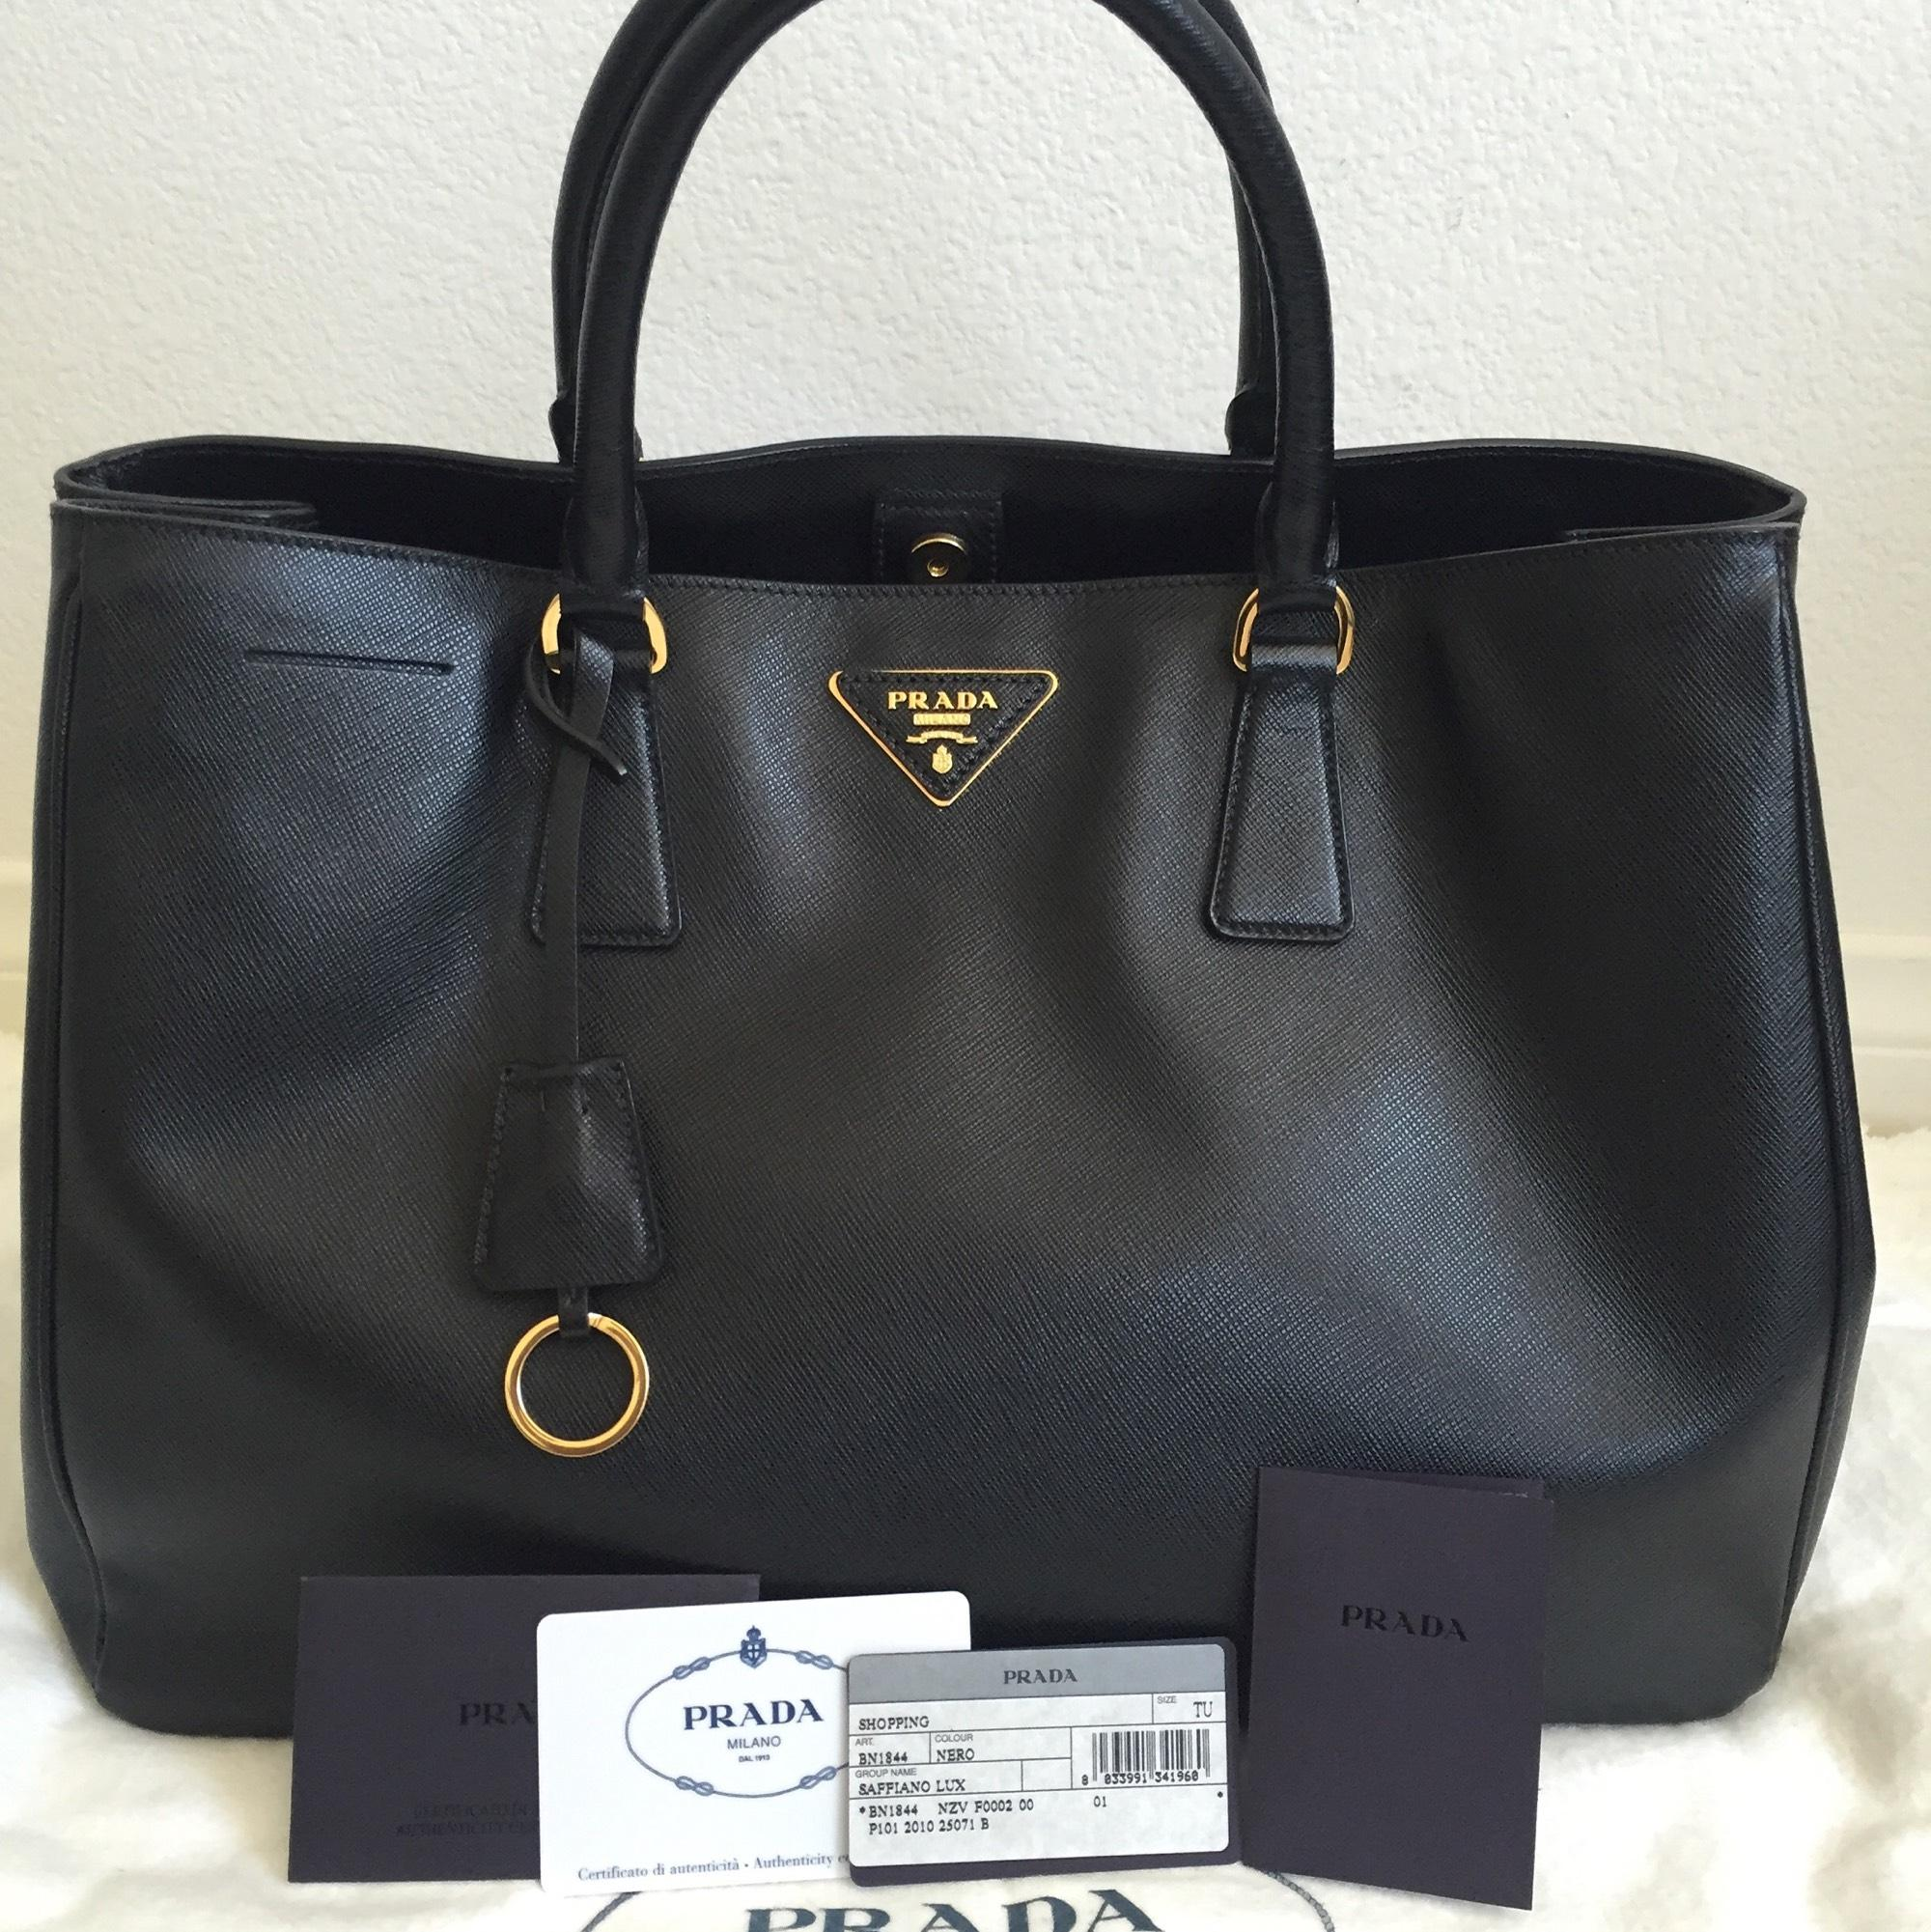 148c7f69ba6d ... where to buy prada tote in black. 123456789101112 29ab7 f8b61